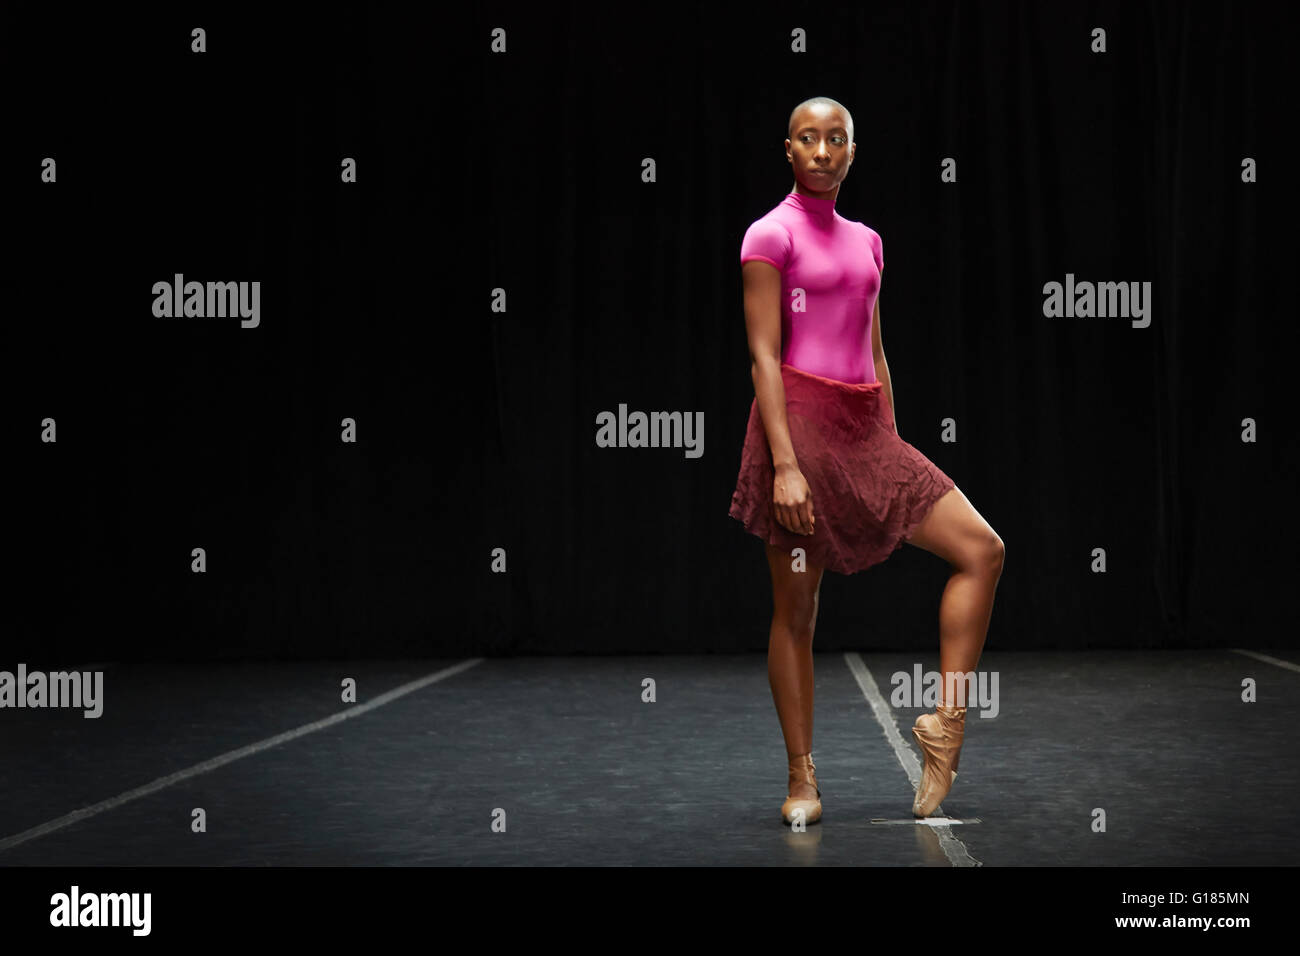 Ballet dancer with foot on tiptoe - Stock Image